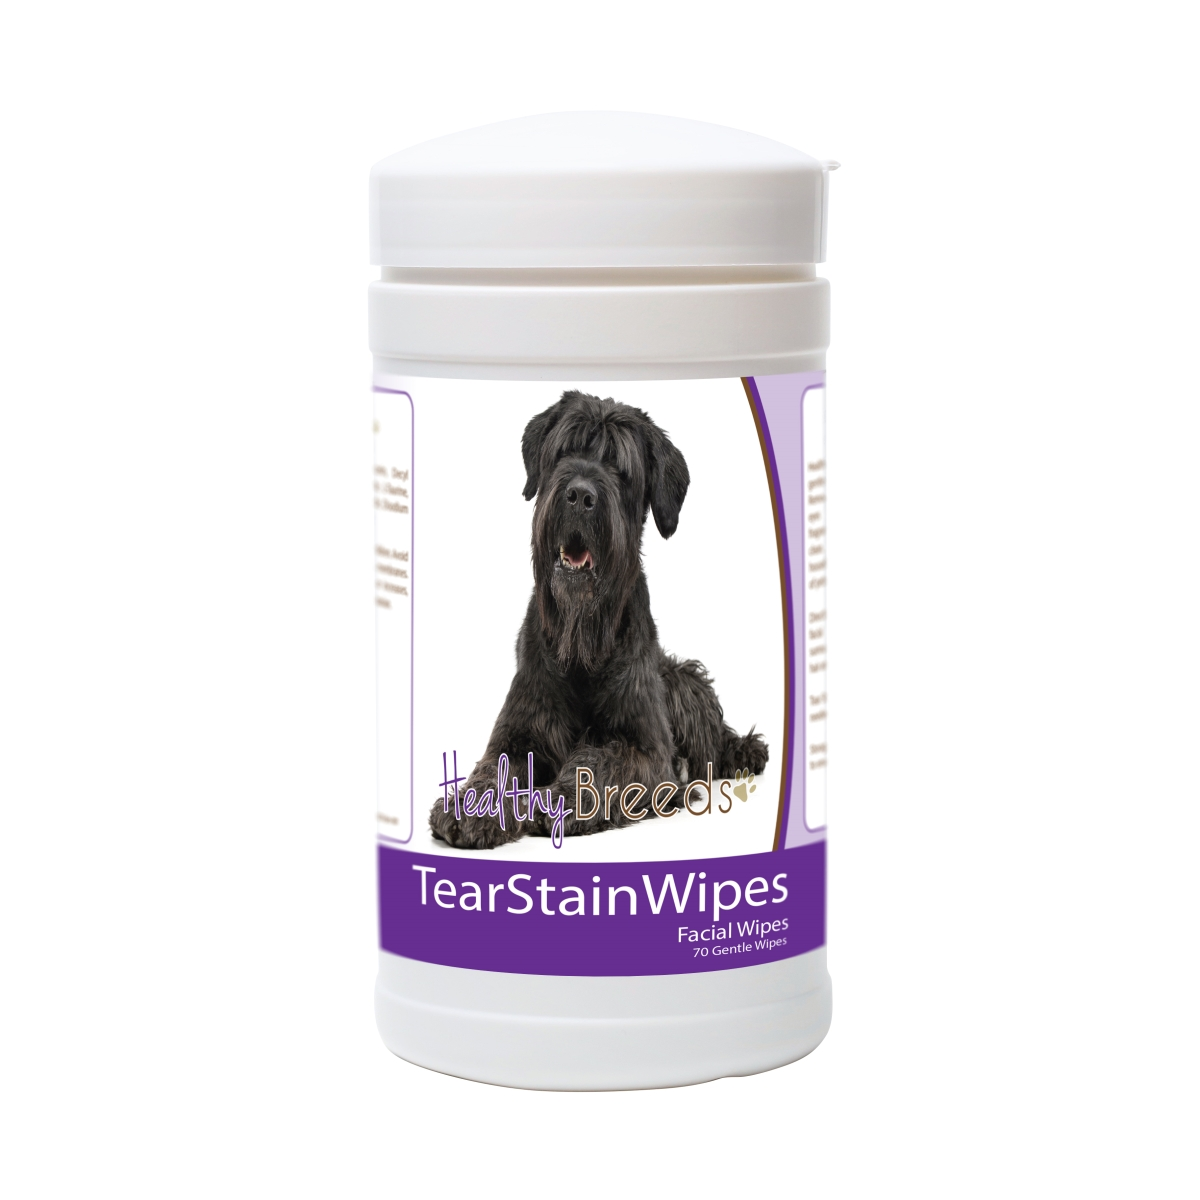 Healthy Breeds 840235175728 Black Russian Terrier Tear Stain Wipes - 70 Count